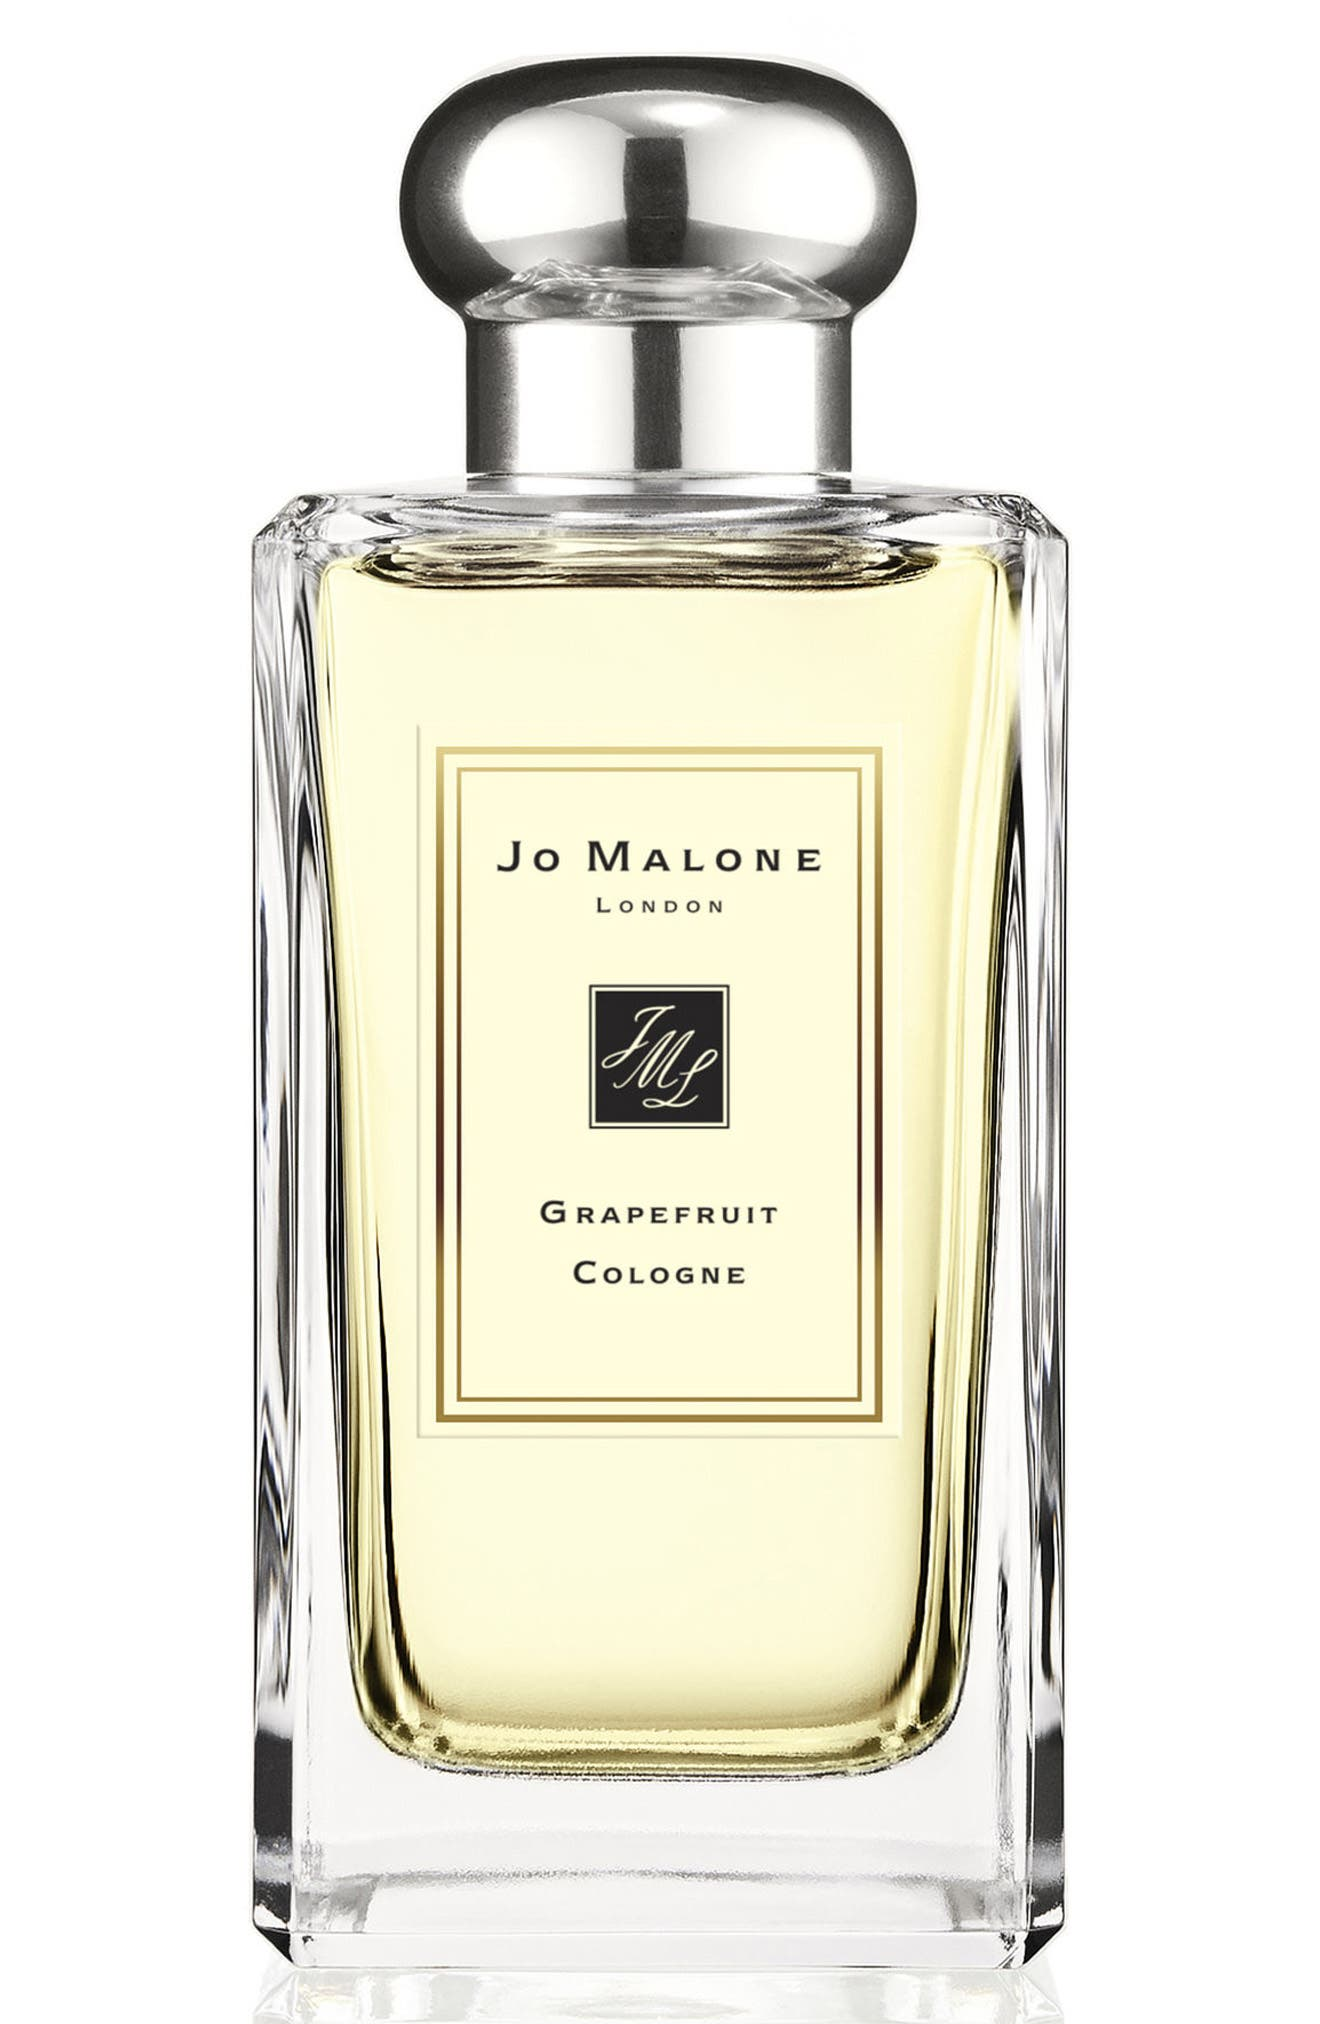 Jo Malone London™ 'Grapefruit' Cologne (3.4 oz.)